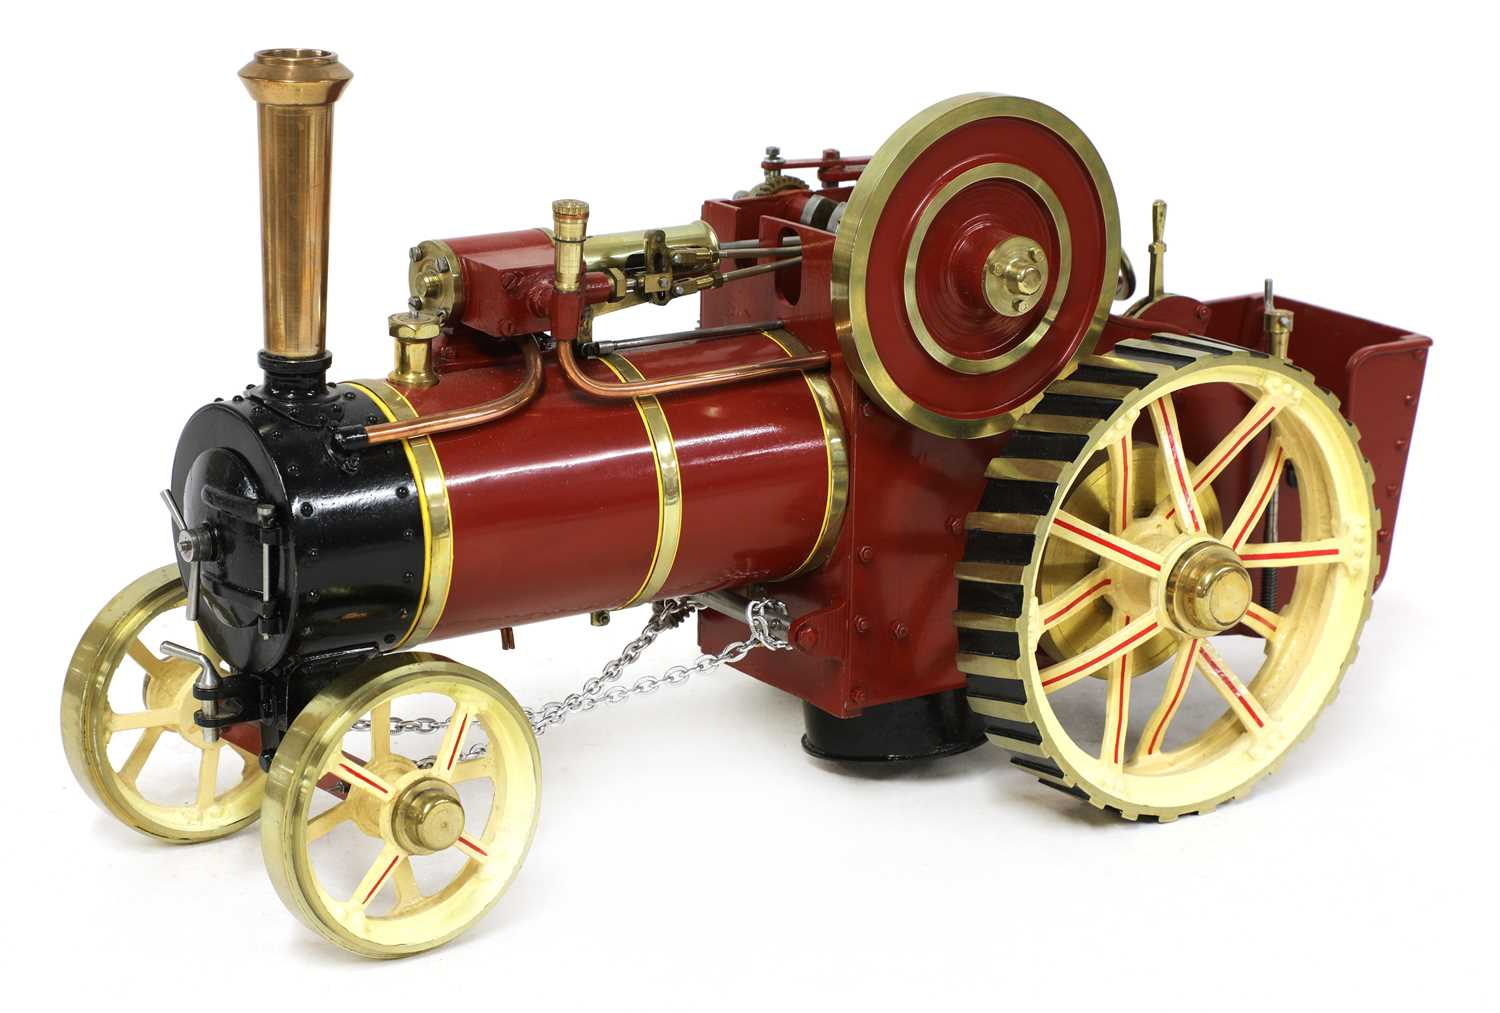 A ¾in scale model Burrell-type live steam traction engine, - Image 2 of 7